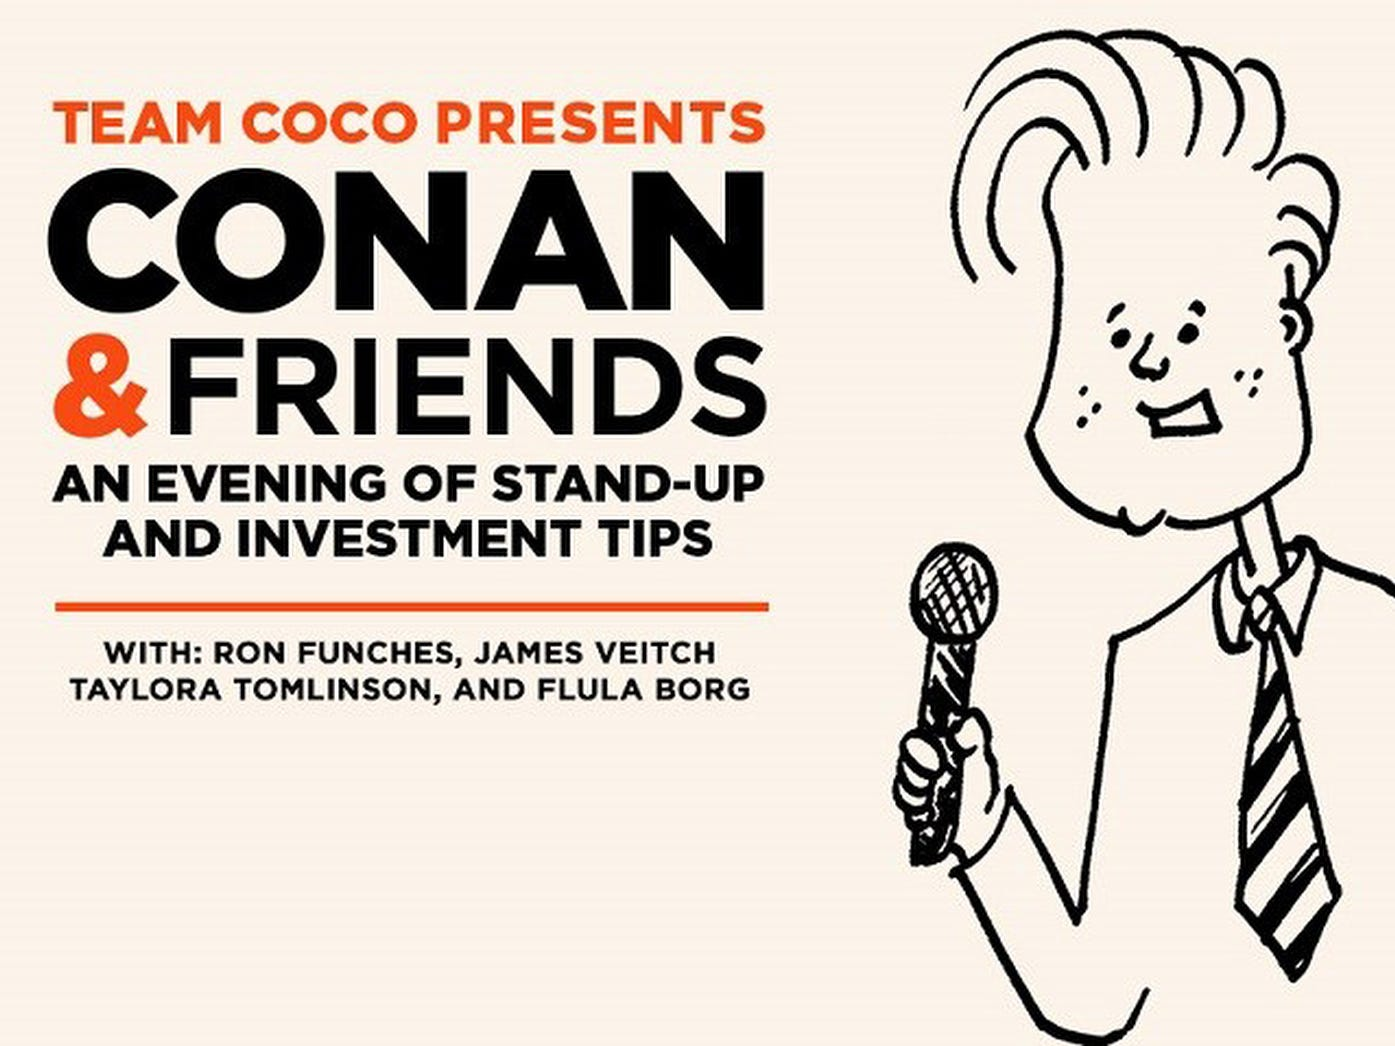 NOV. 18